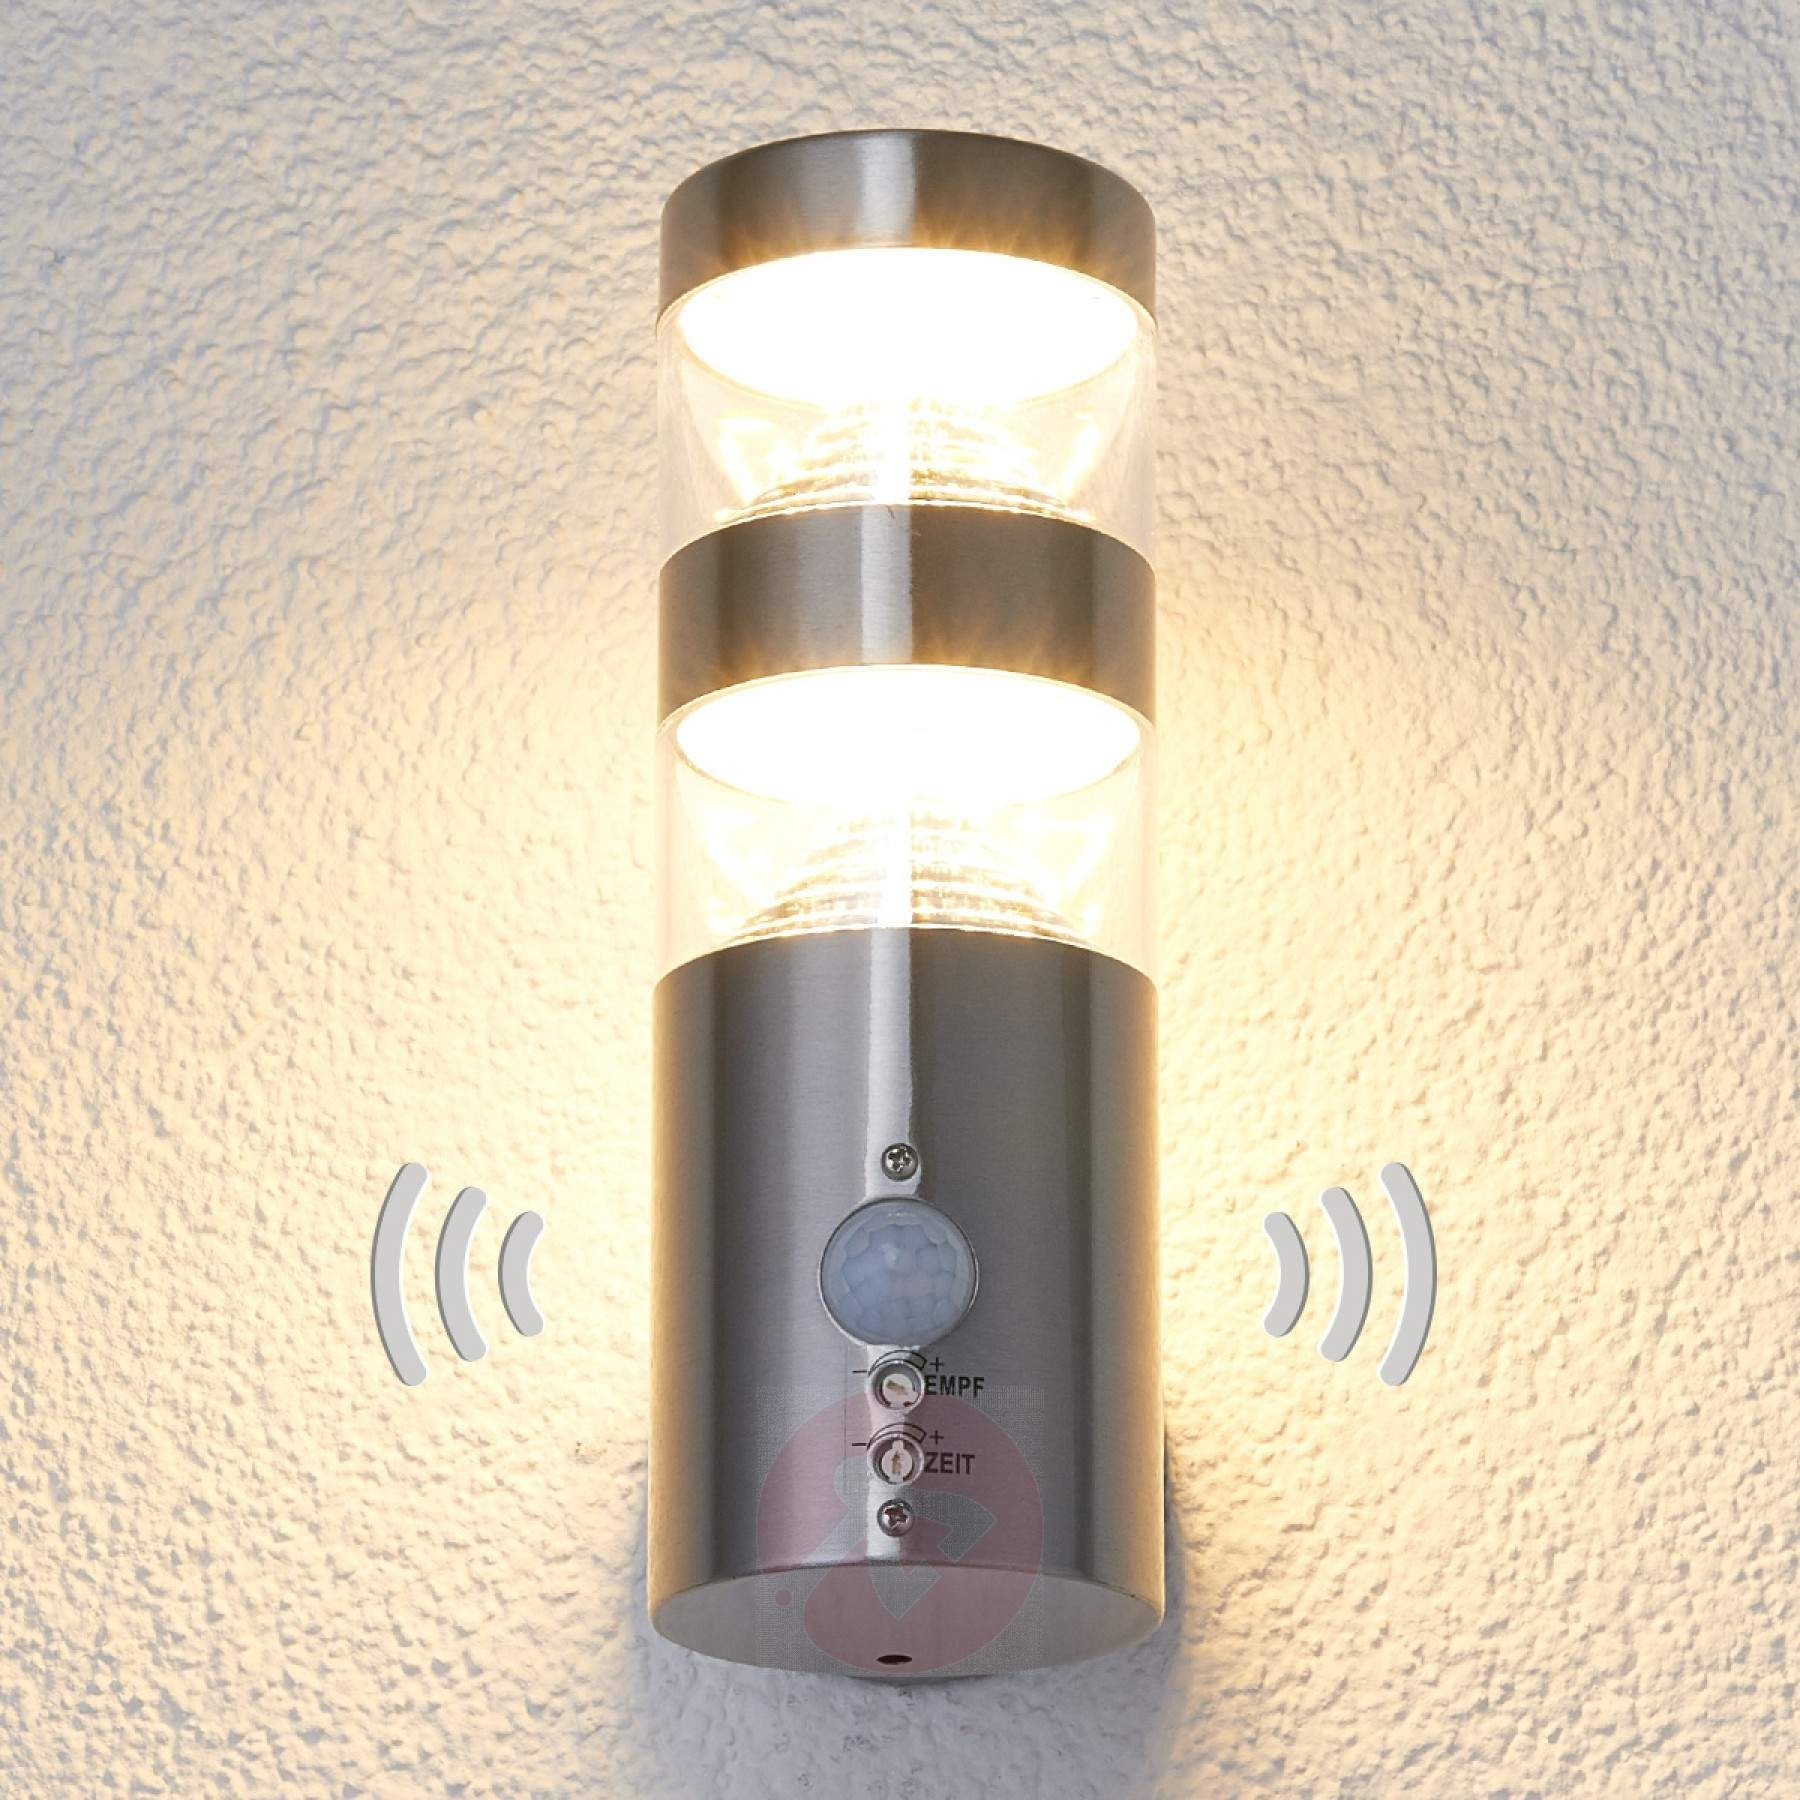 Led Outdoor Wall Light Lanea With Motion Sensor | Lights.co (View 12 of 15)